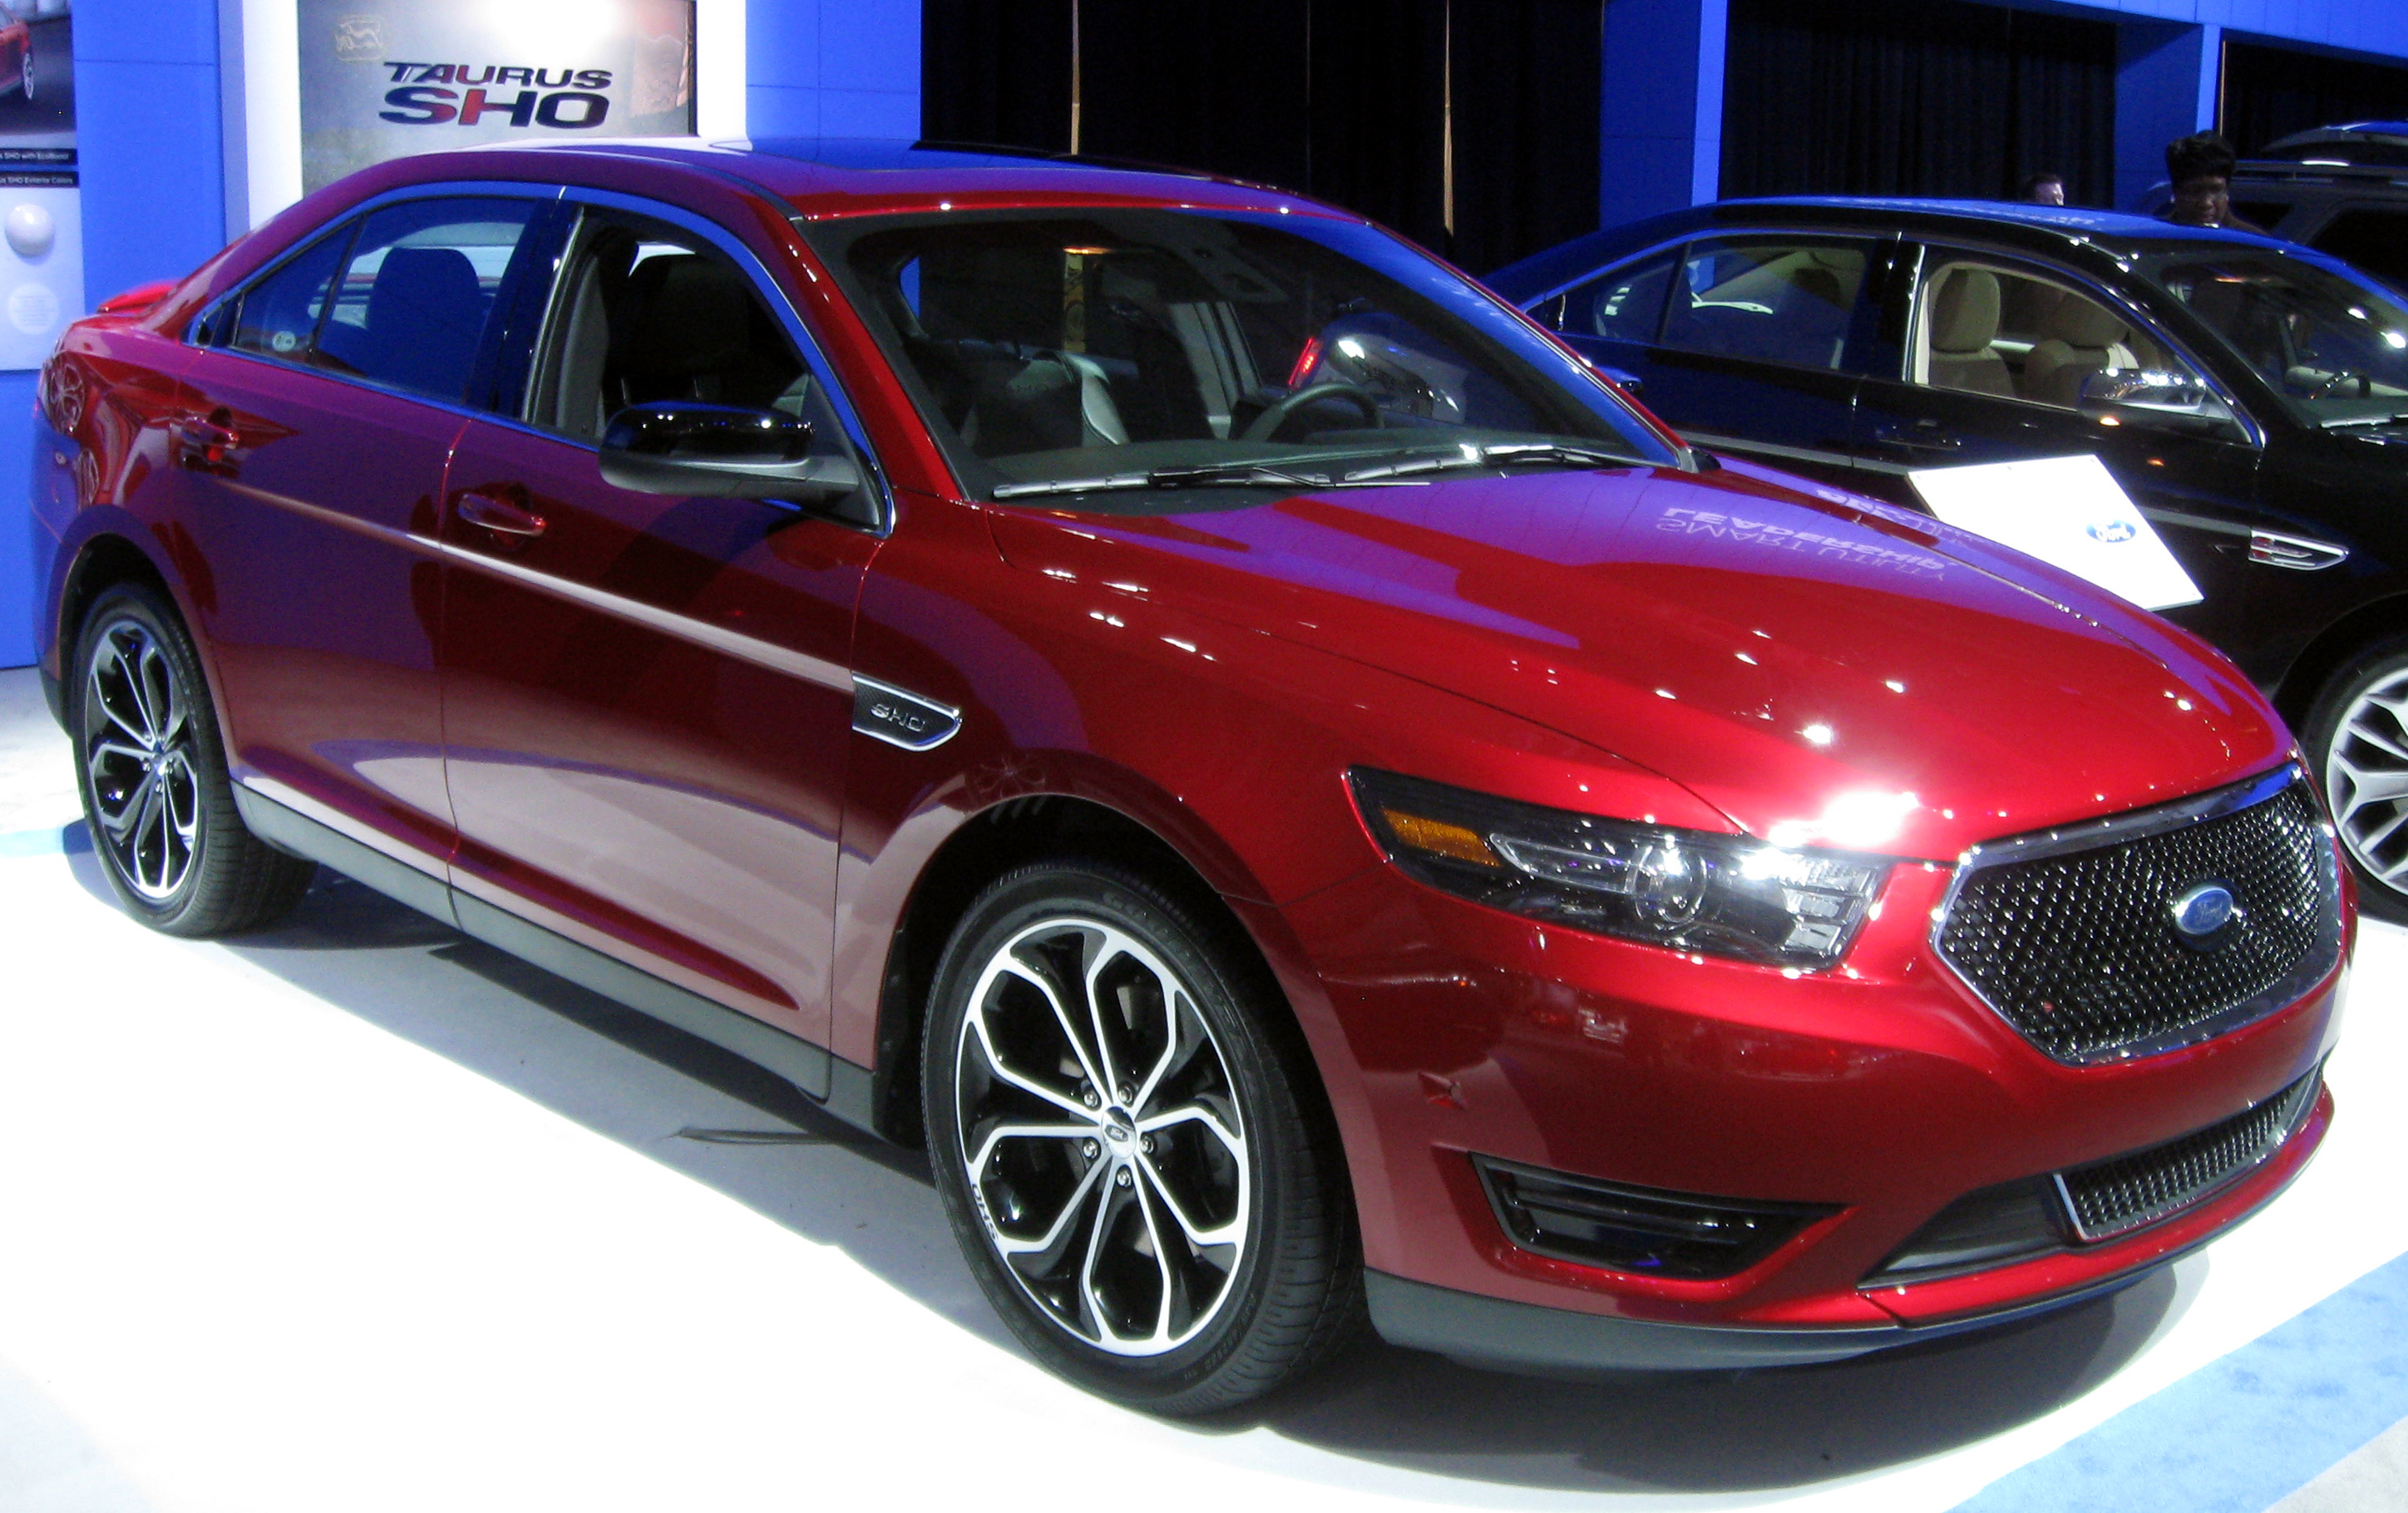 2012 ford taurus sho size 3 mb resolution 2896x1820 type link file src